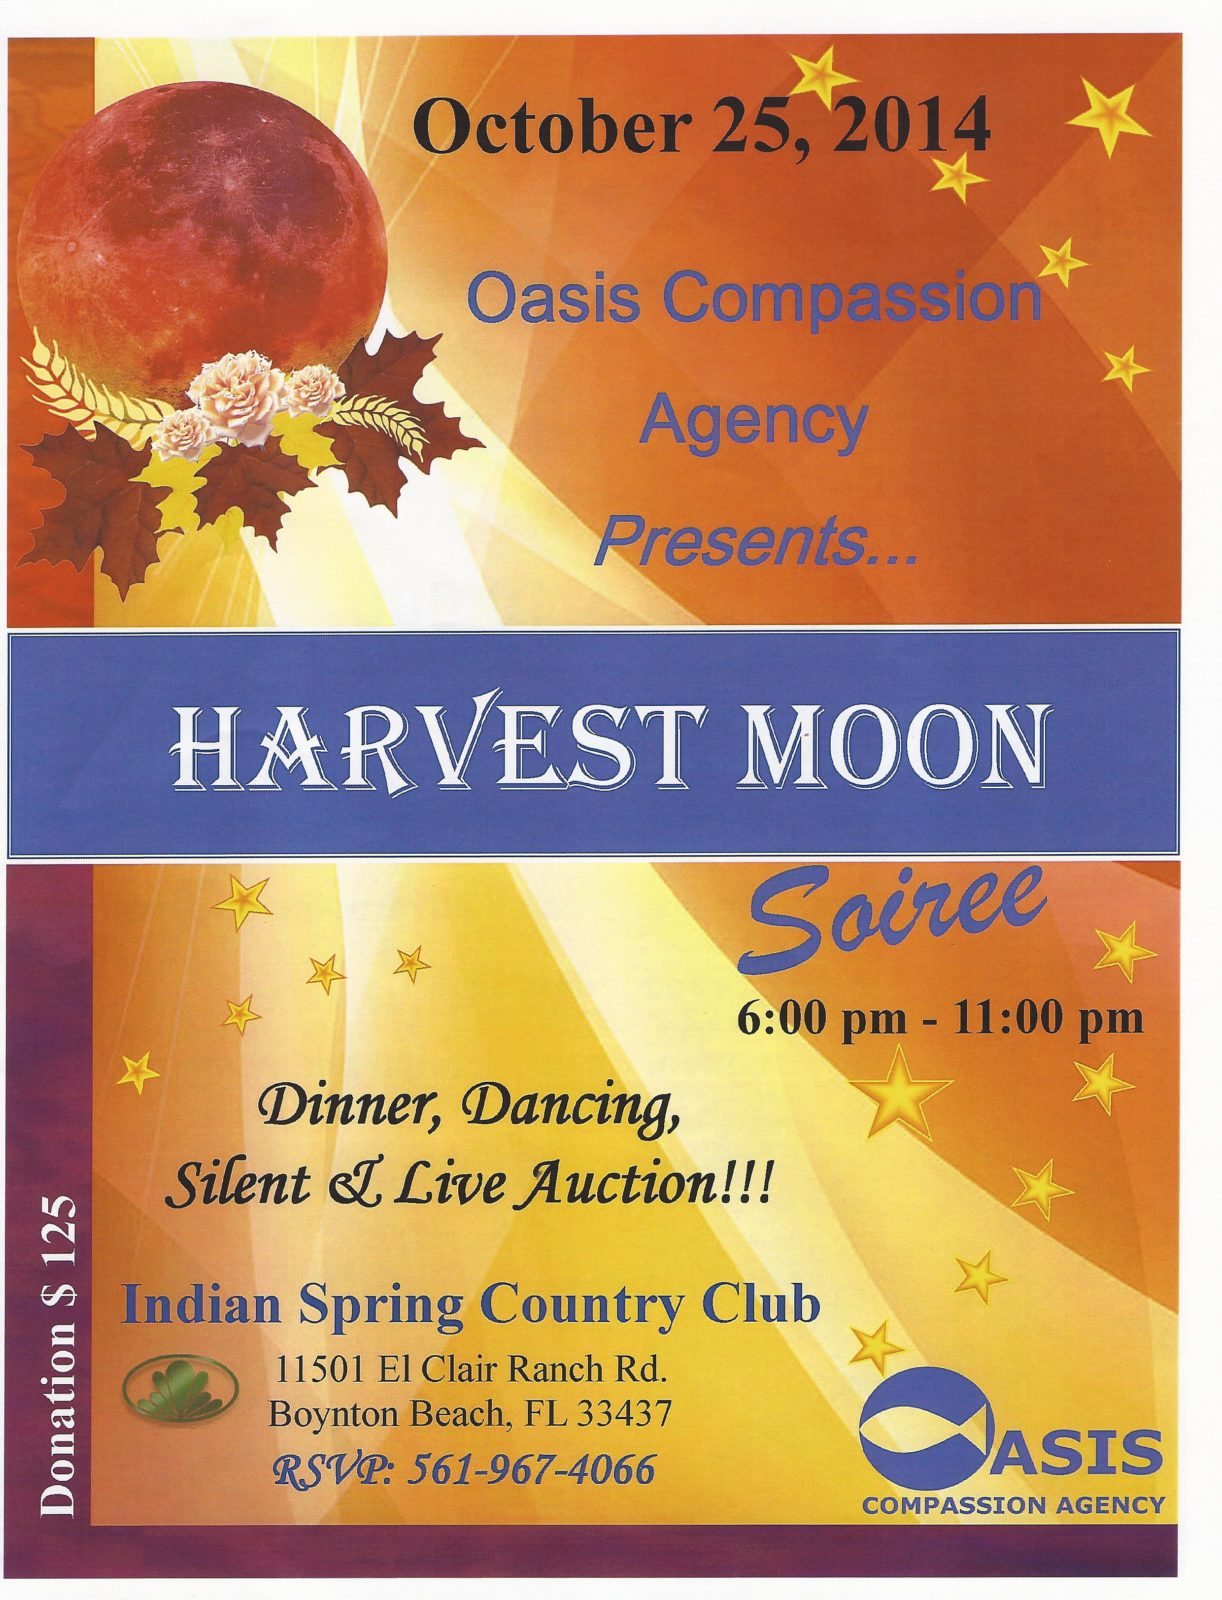 HARVEST MOON SOIREE – CHARITY DINNER EVENT